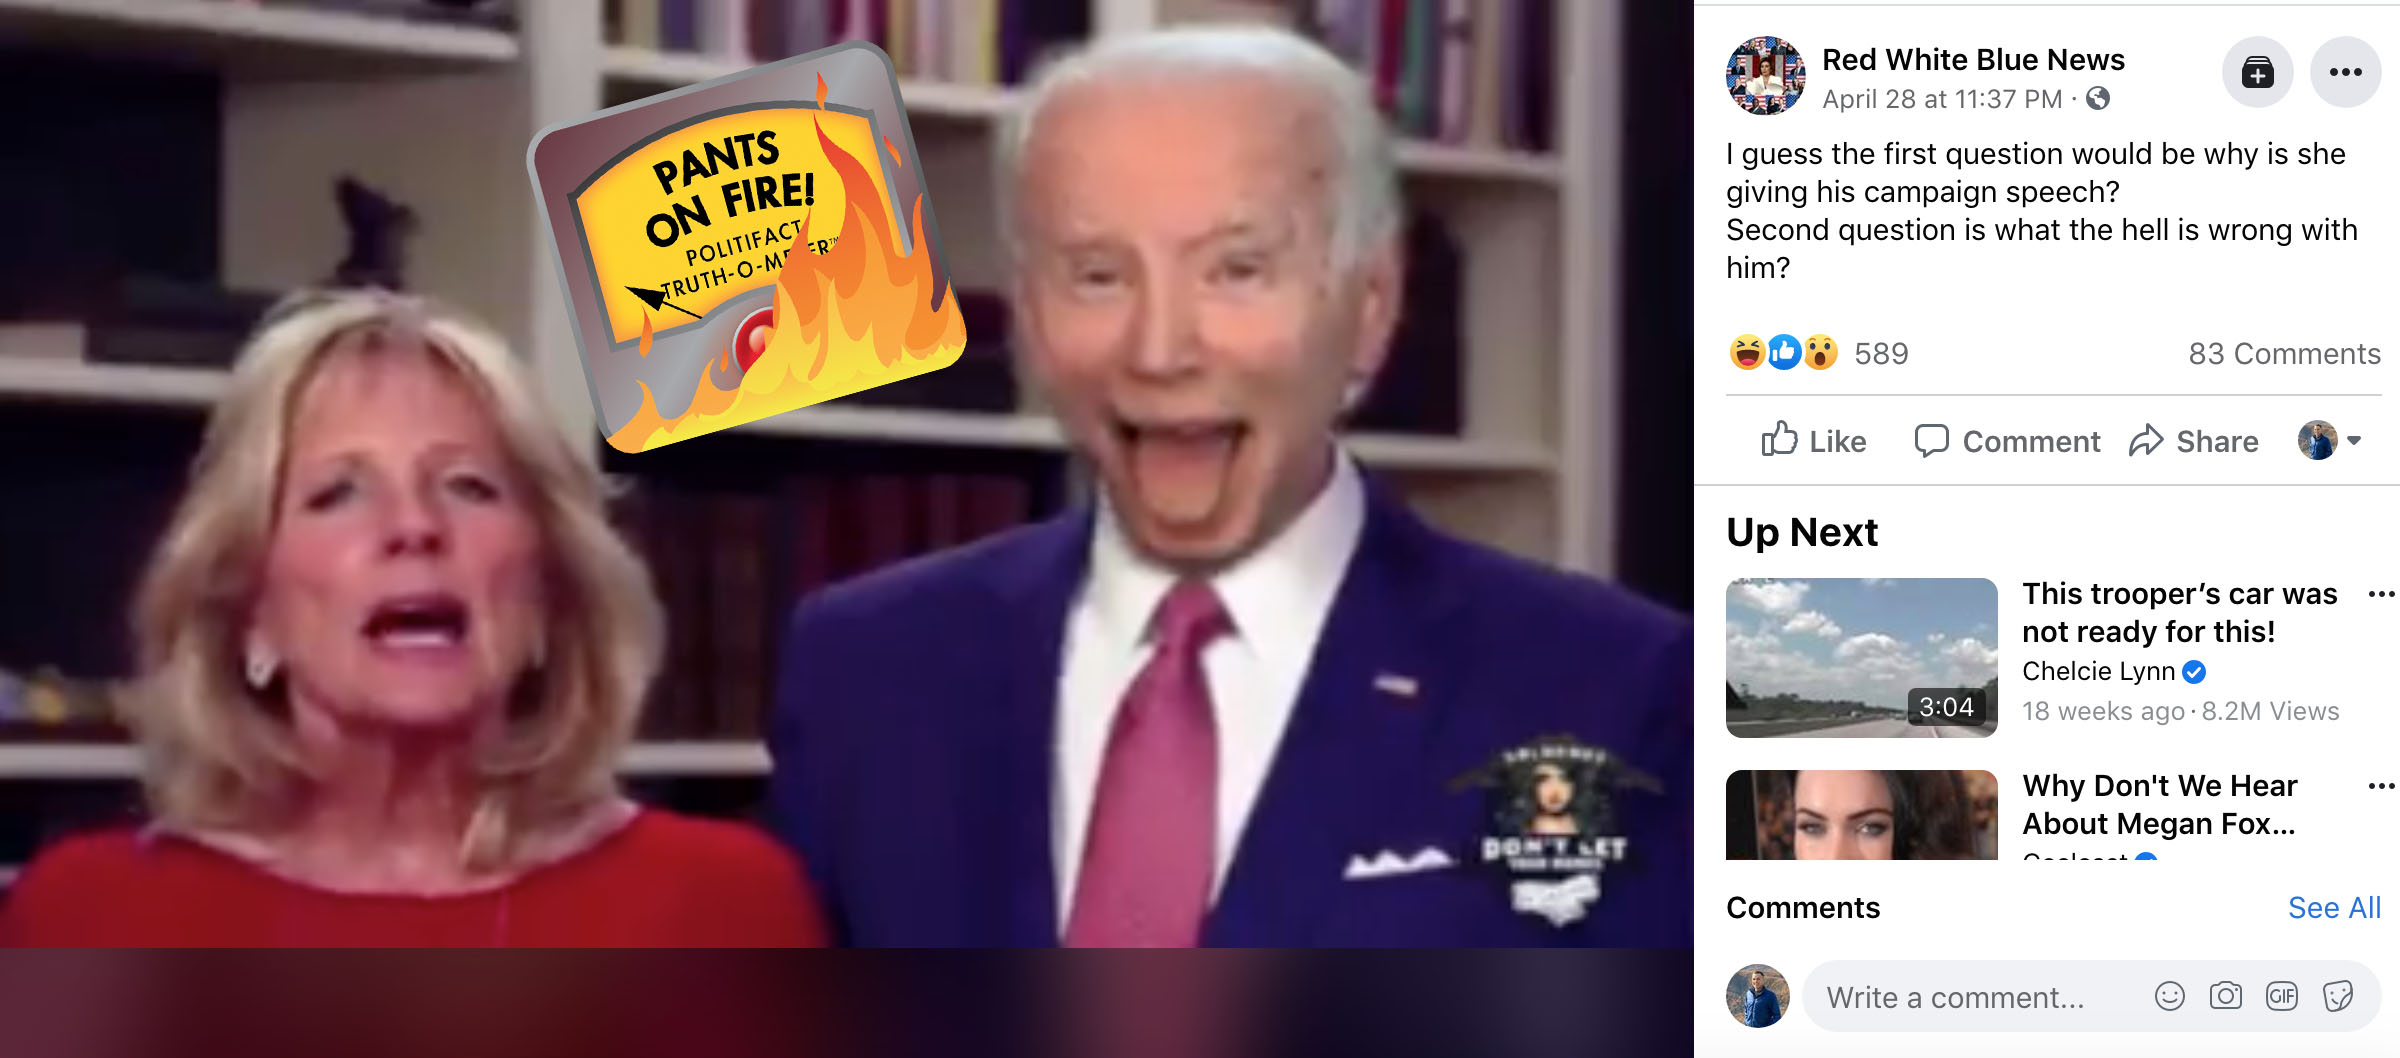 Politifact How A Parody Gif Of Biden Lolling His Tongue Became A Manipulated Video On Facebook